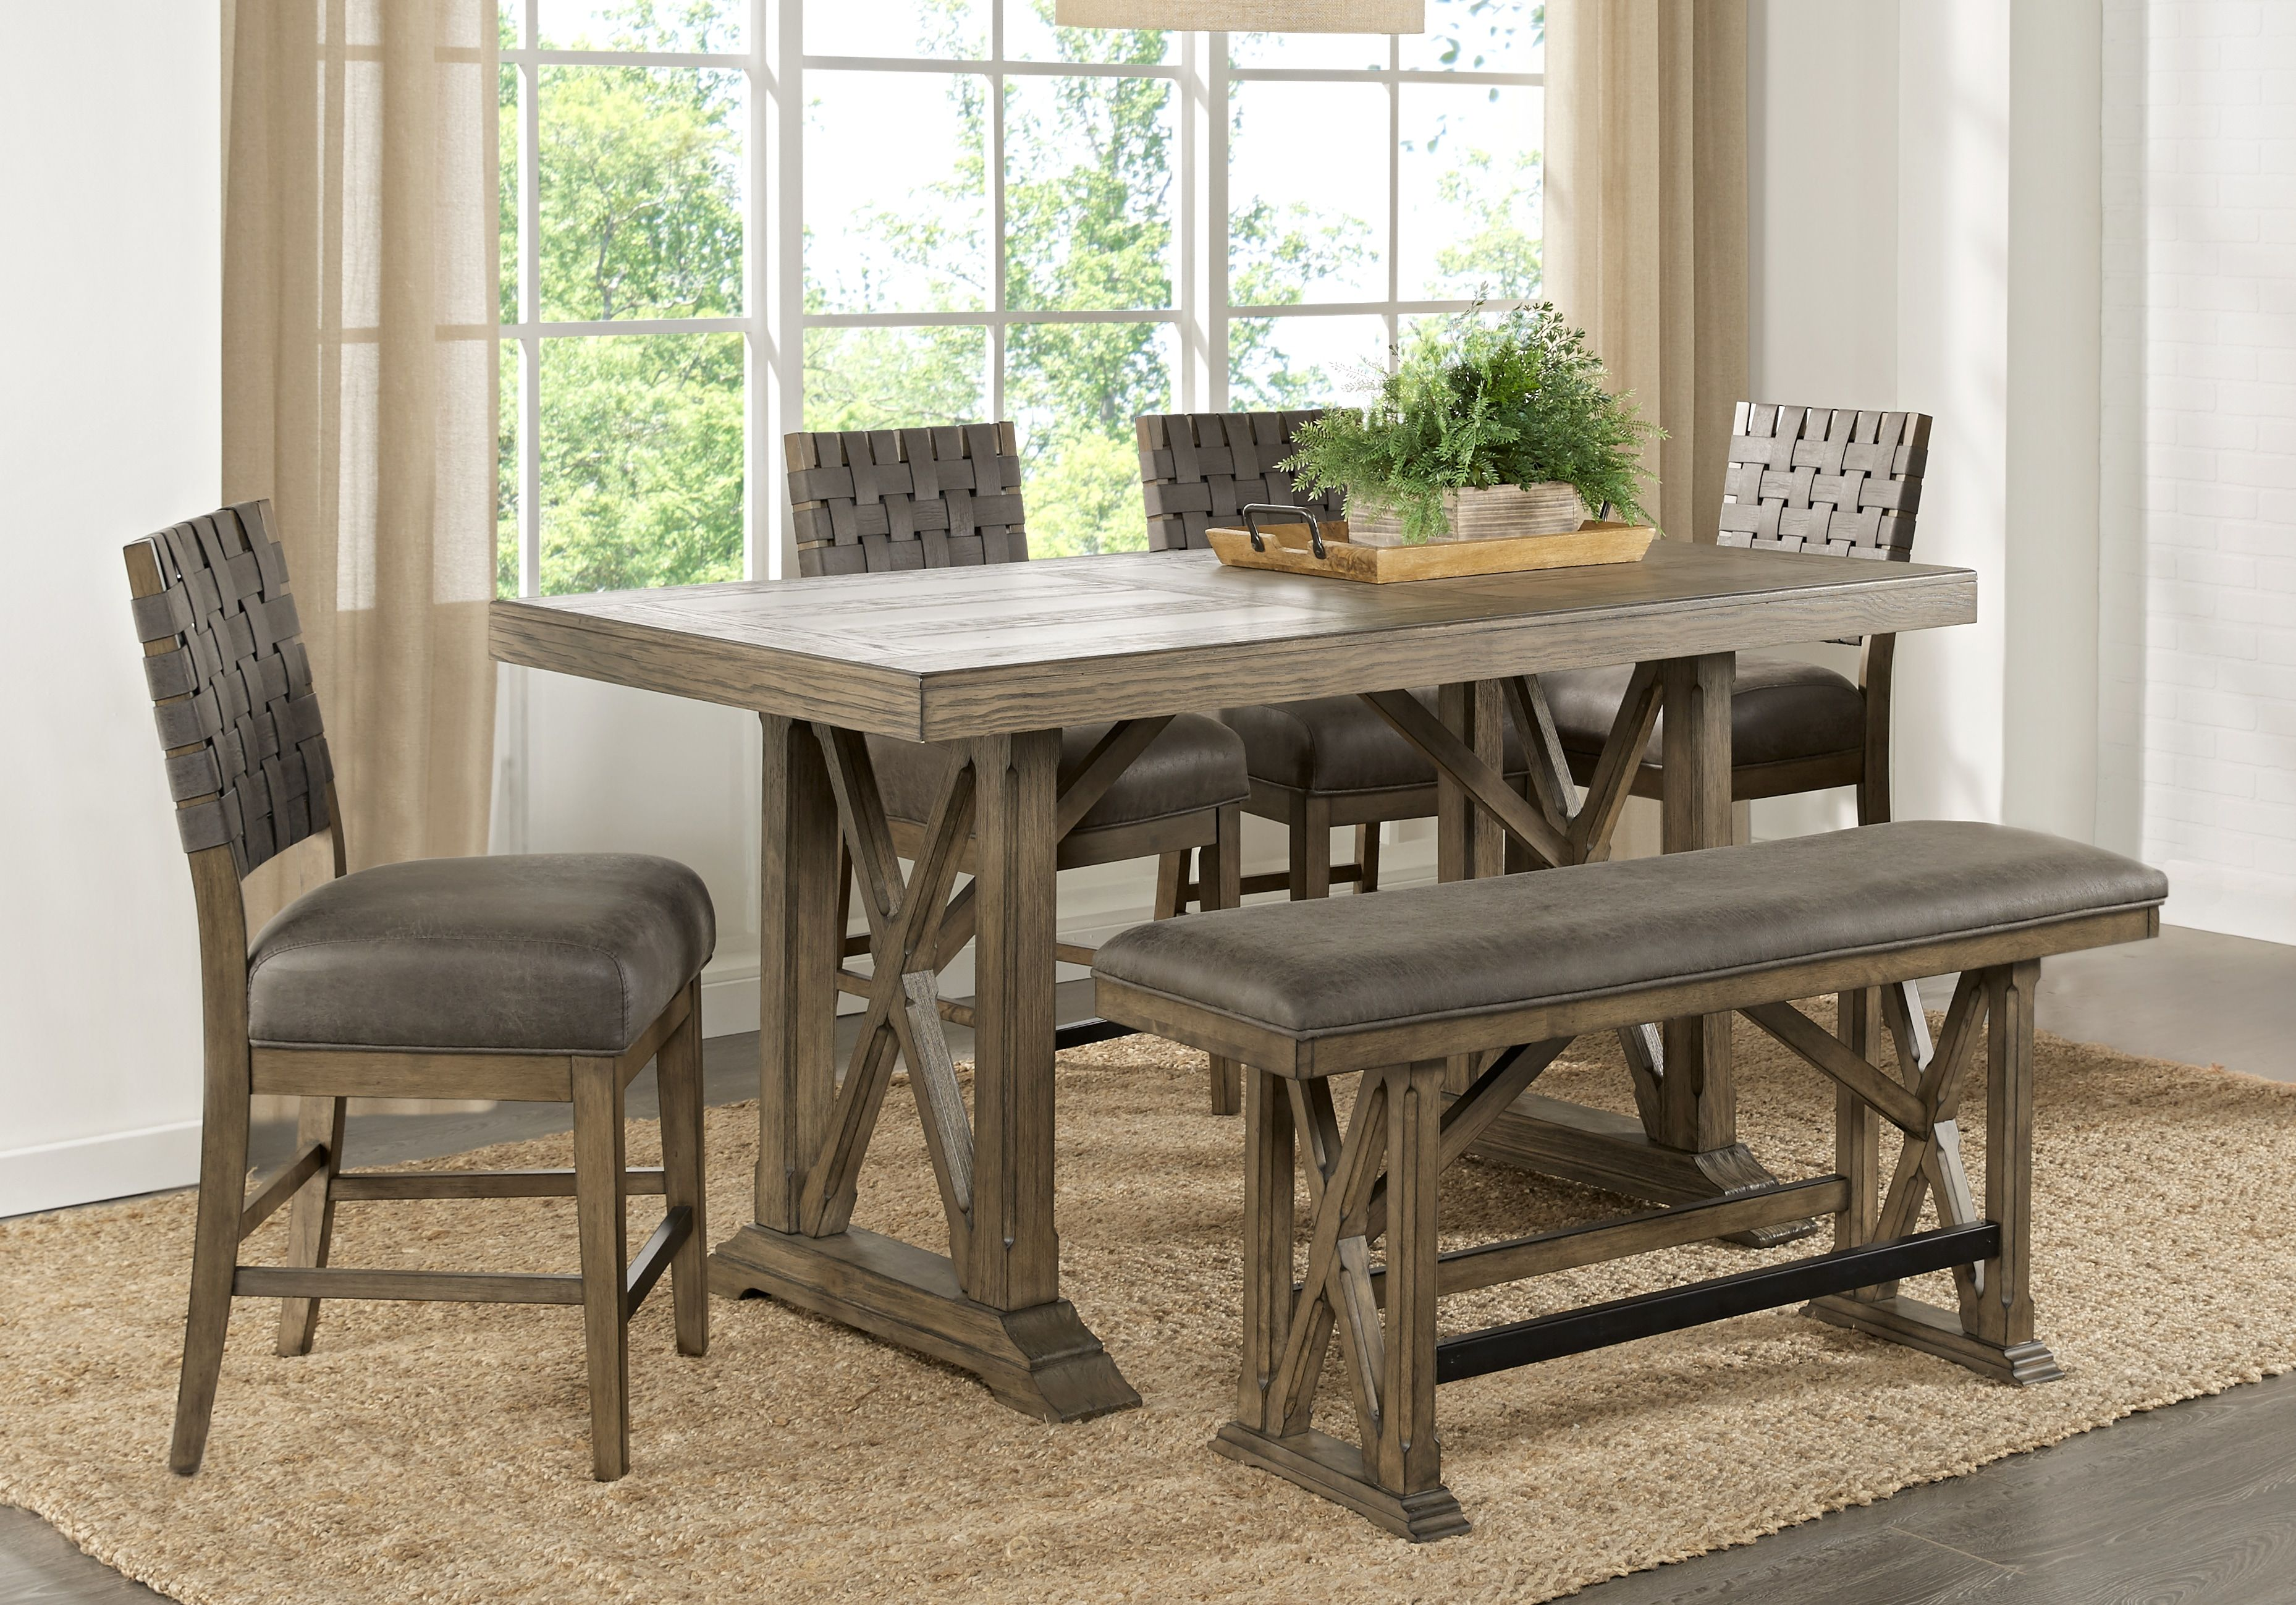 33++ Rooms to go dining table bench Best Seller